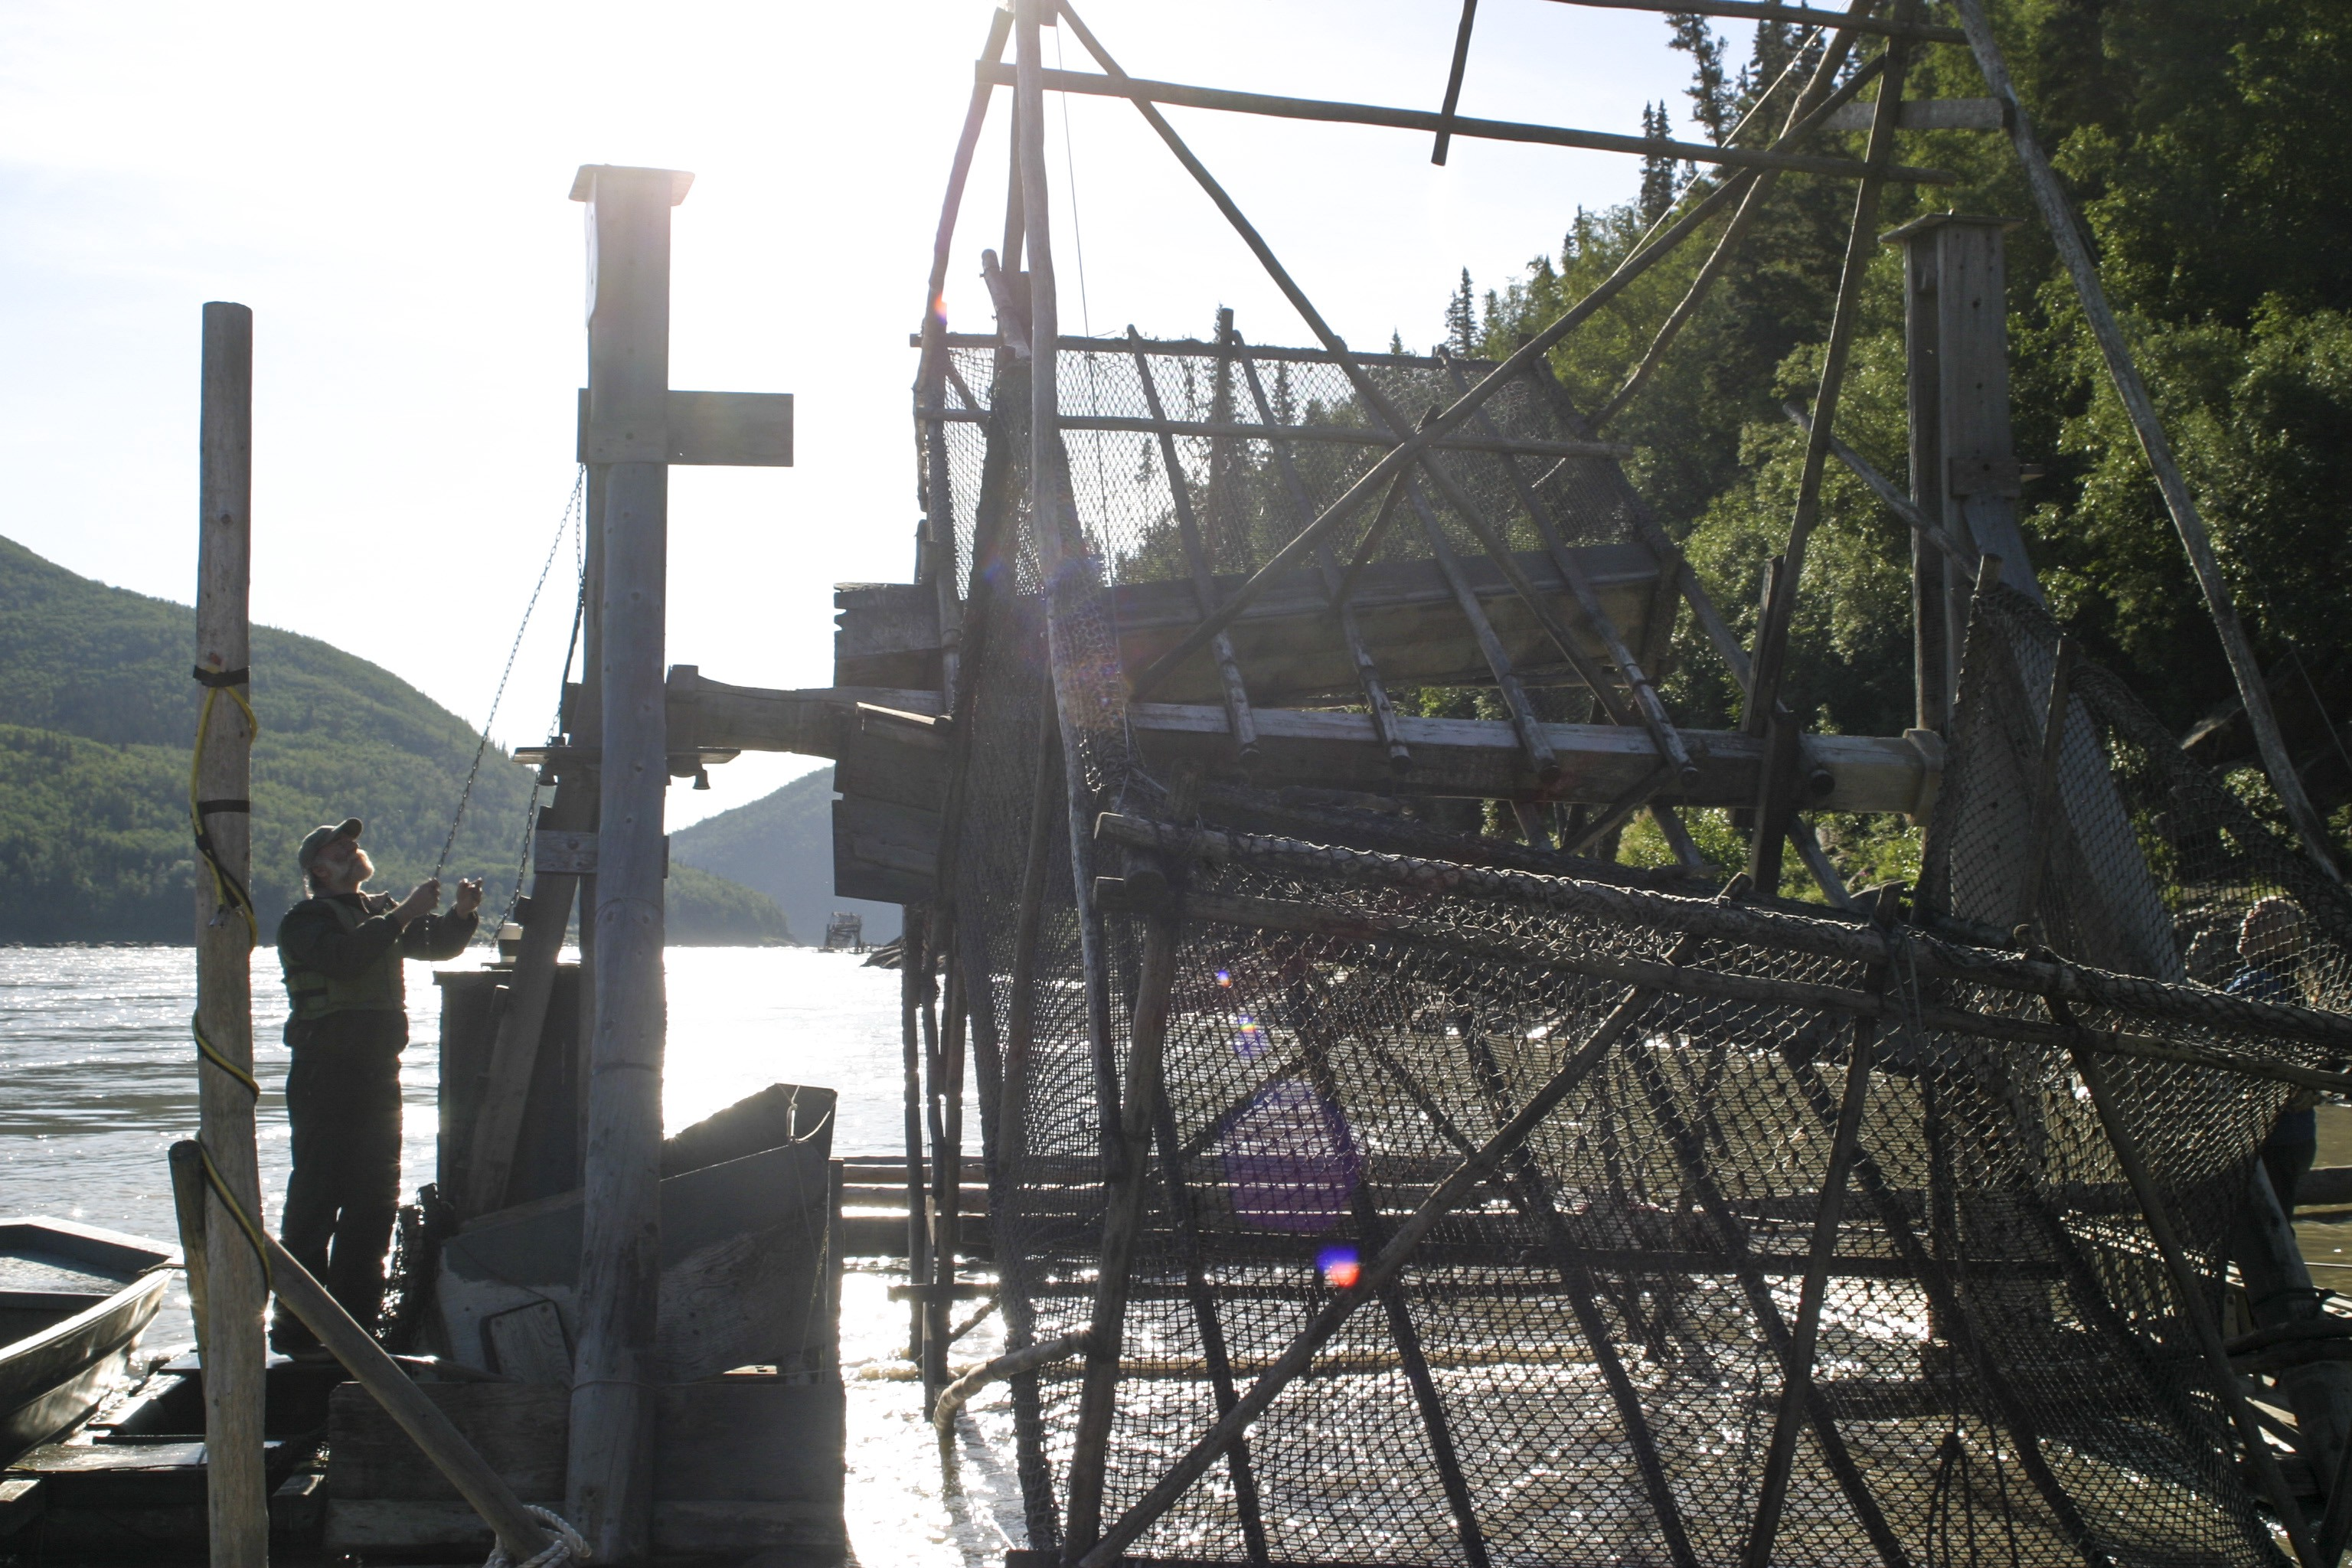 a man standing next to a large fish wheel in a river